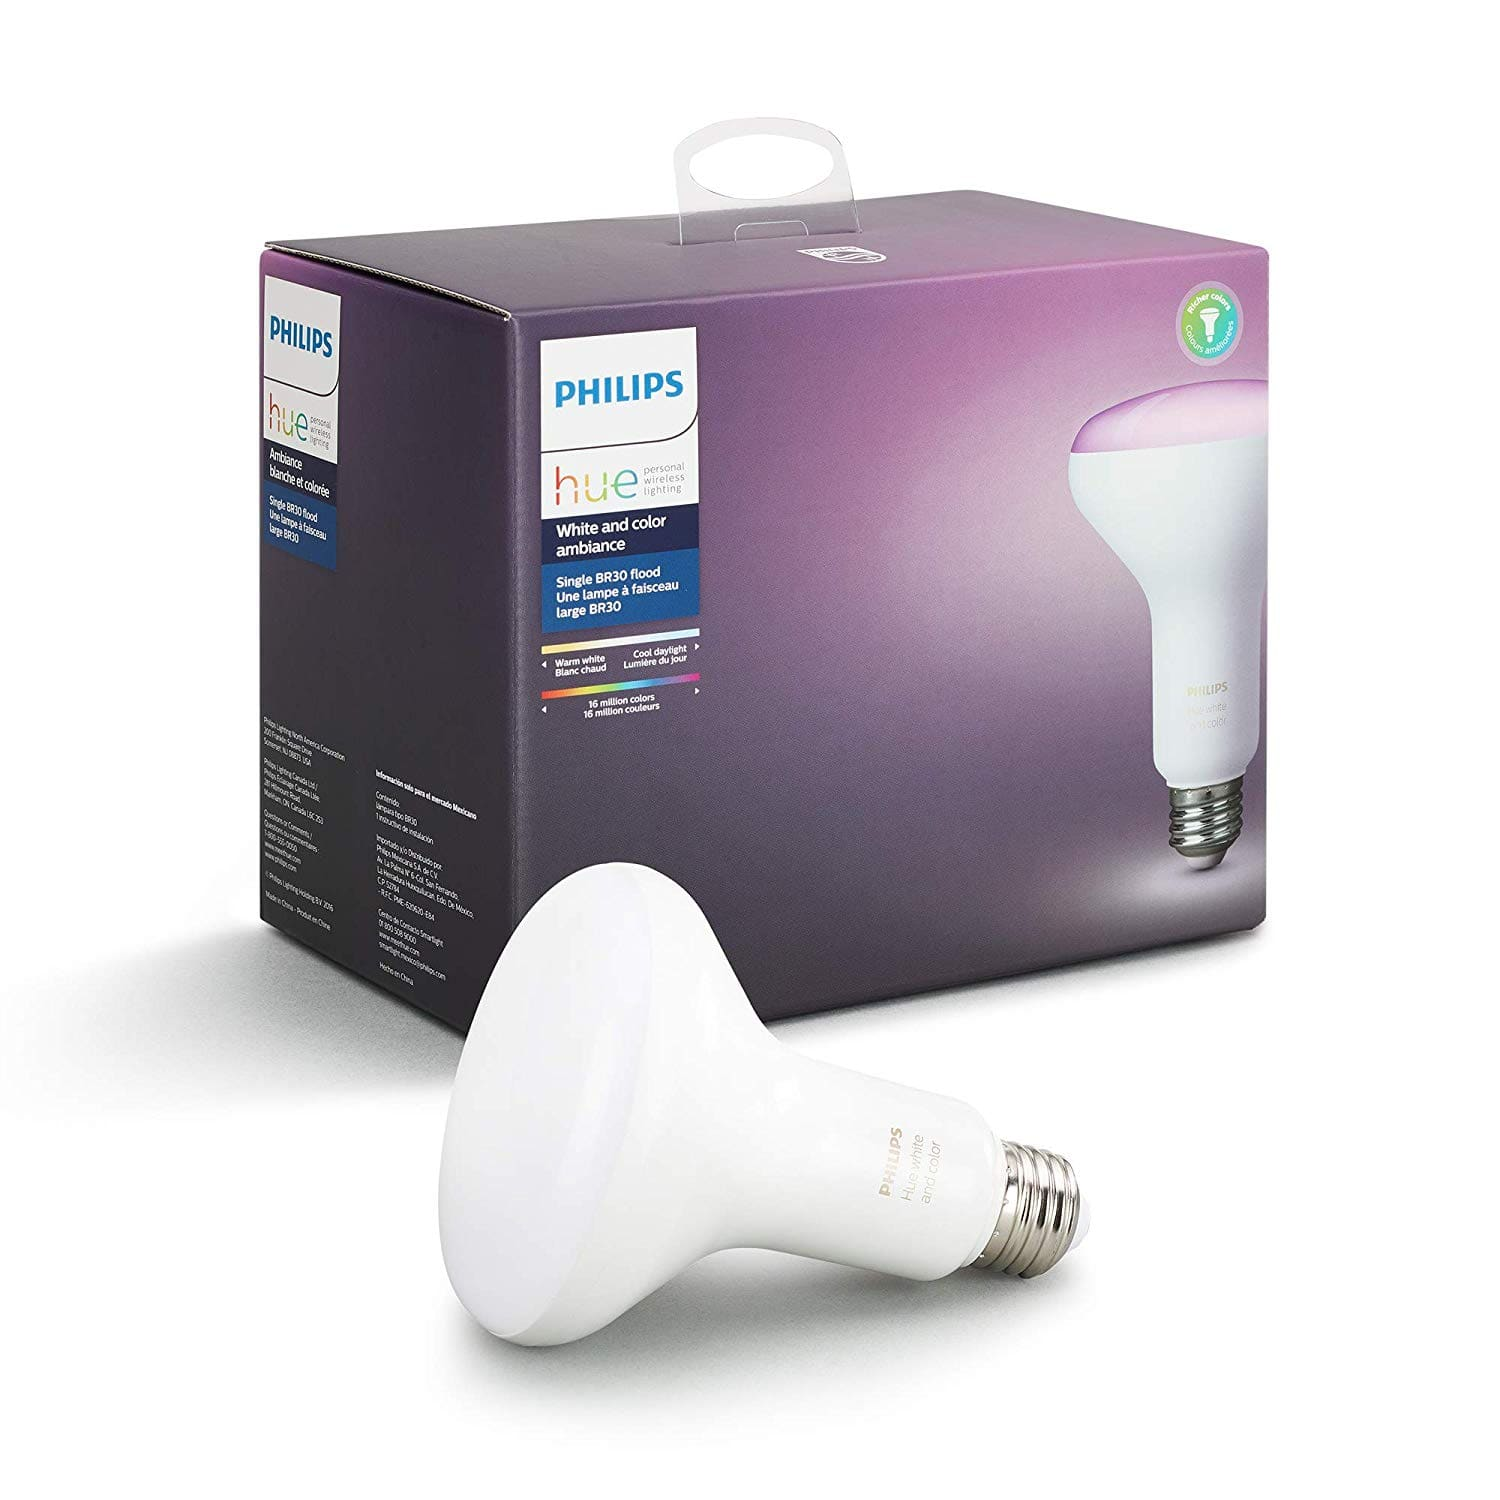 Philips Hue BR30 white and color $39.97 @ Amazon